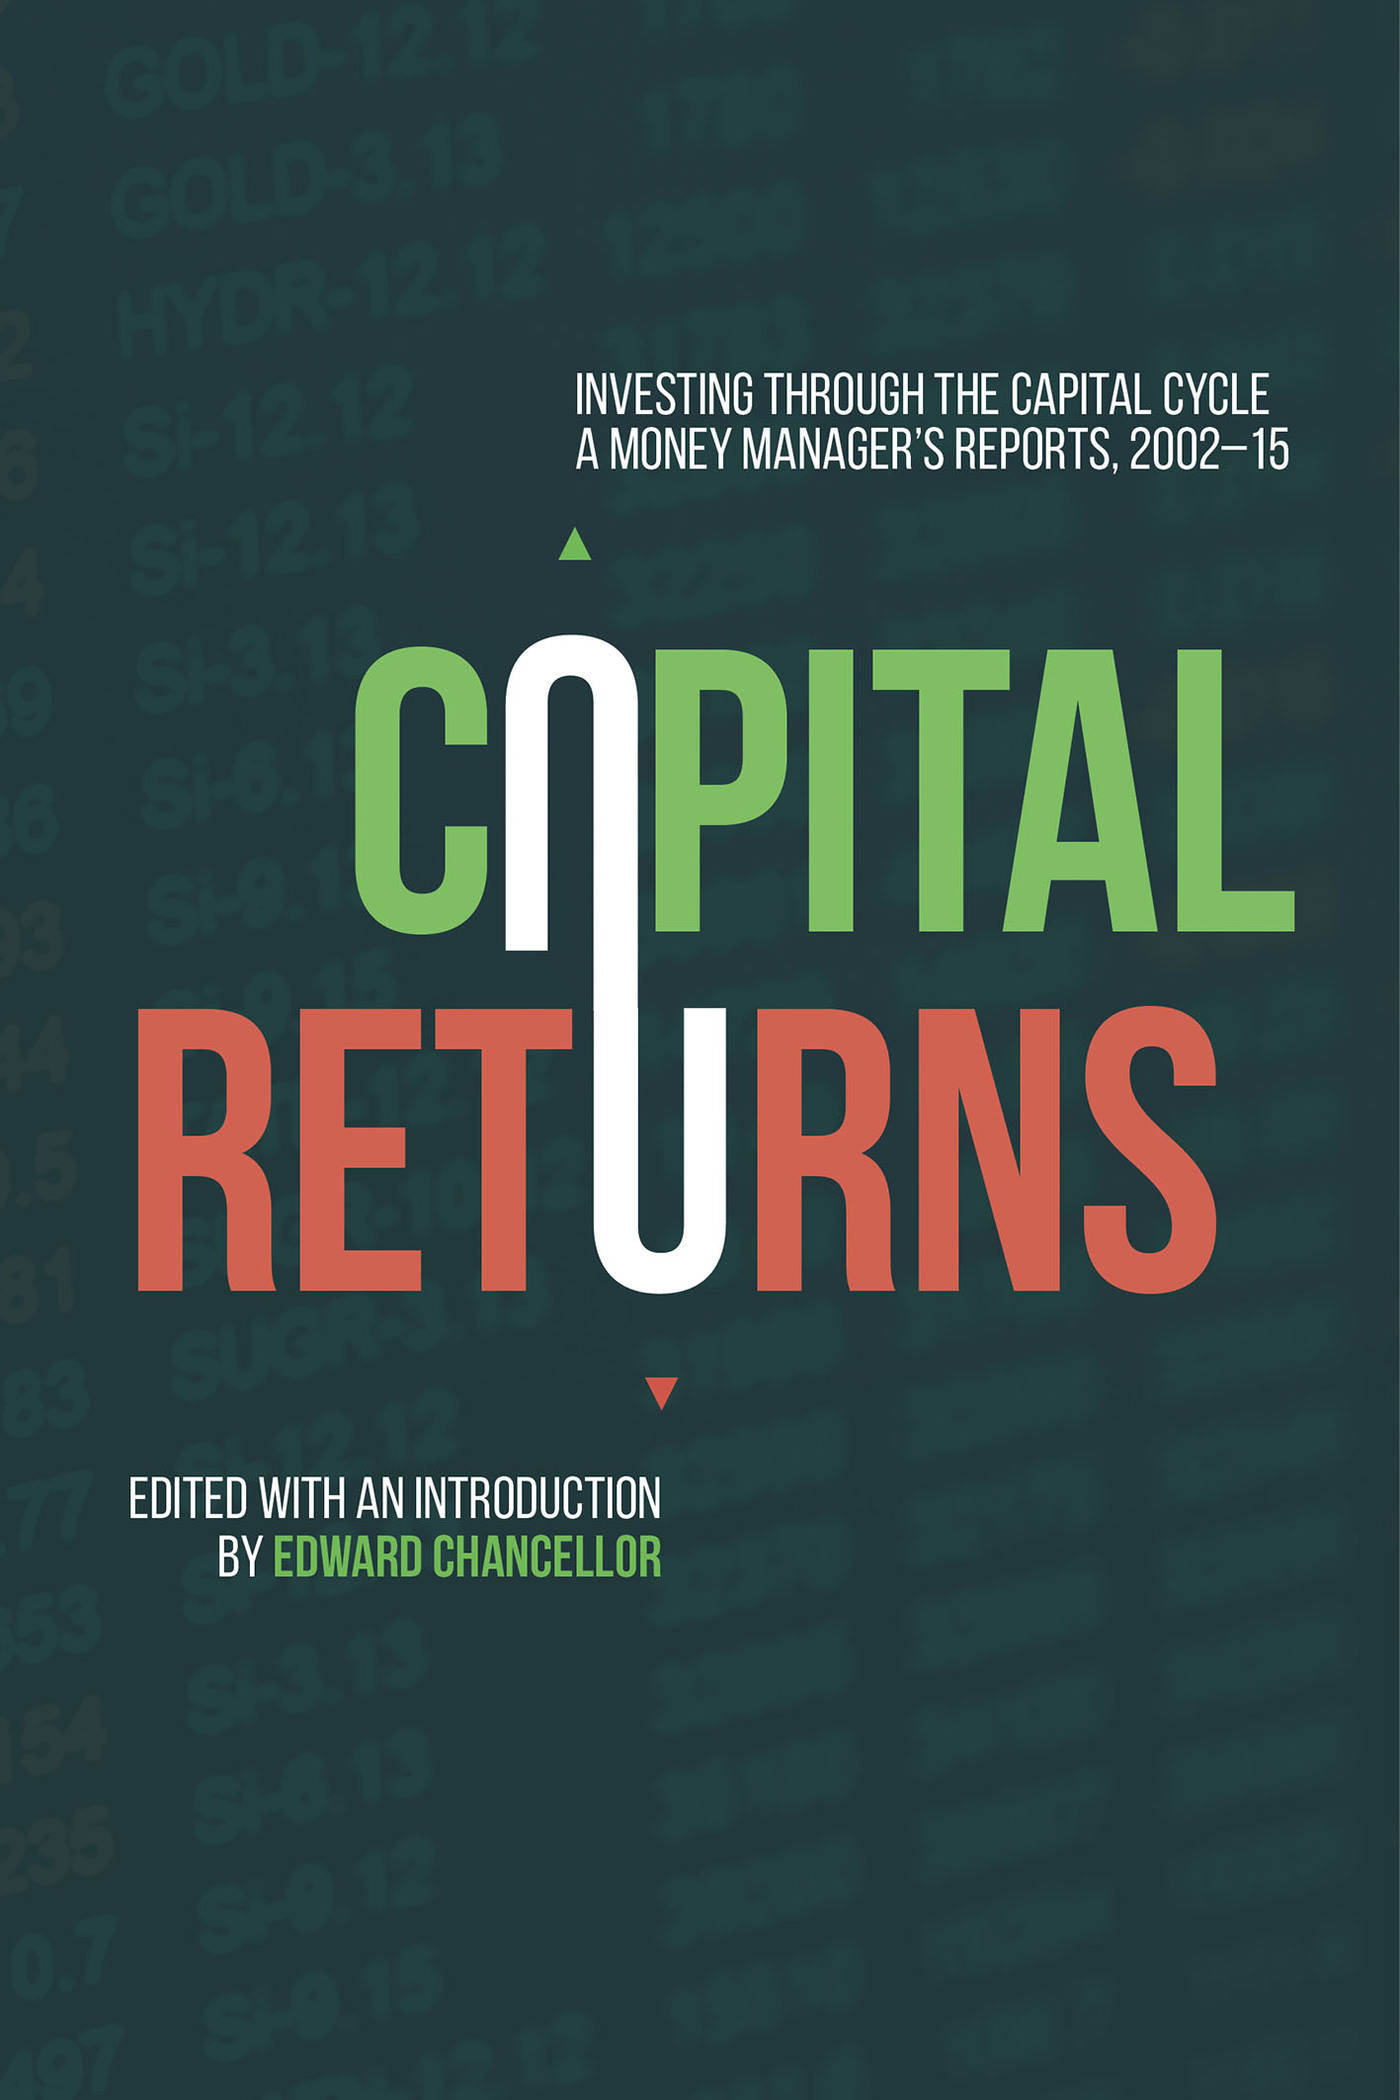 Edward Chancellor Capital Returns Investing Through the Capital Cycle A Money Manager's Reports 2002-15